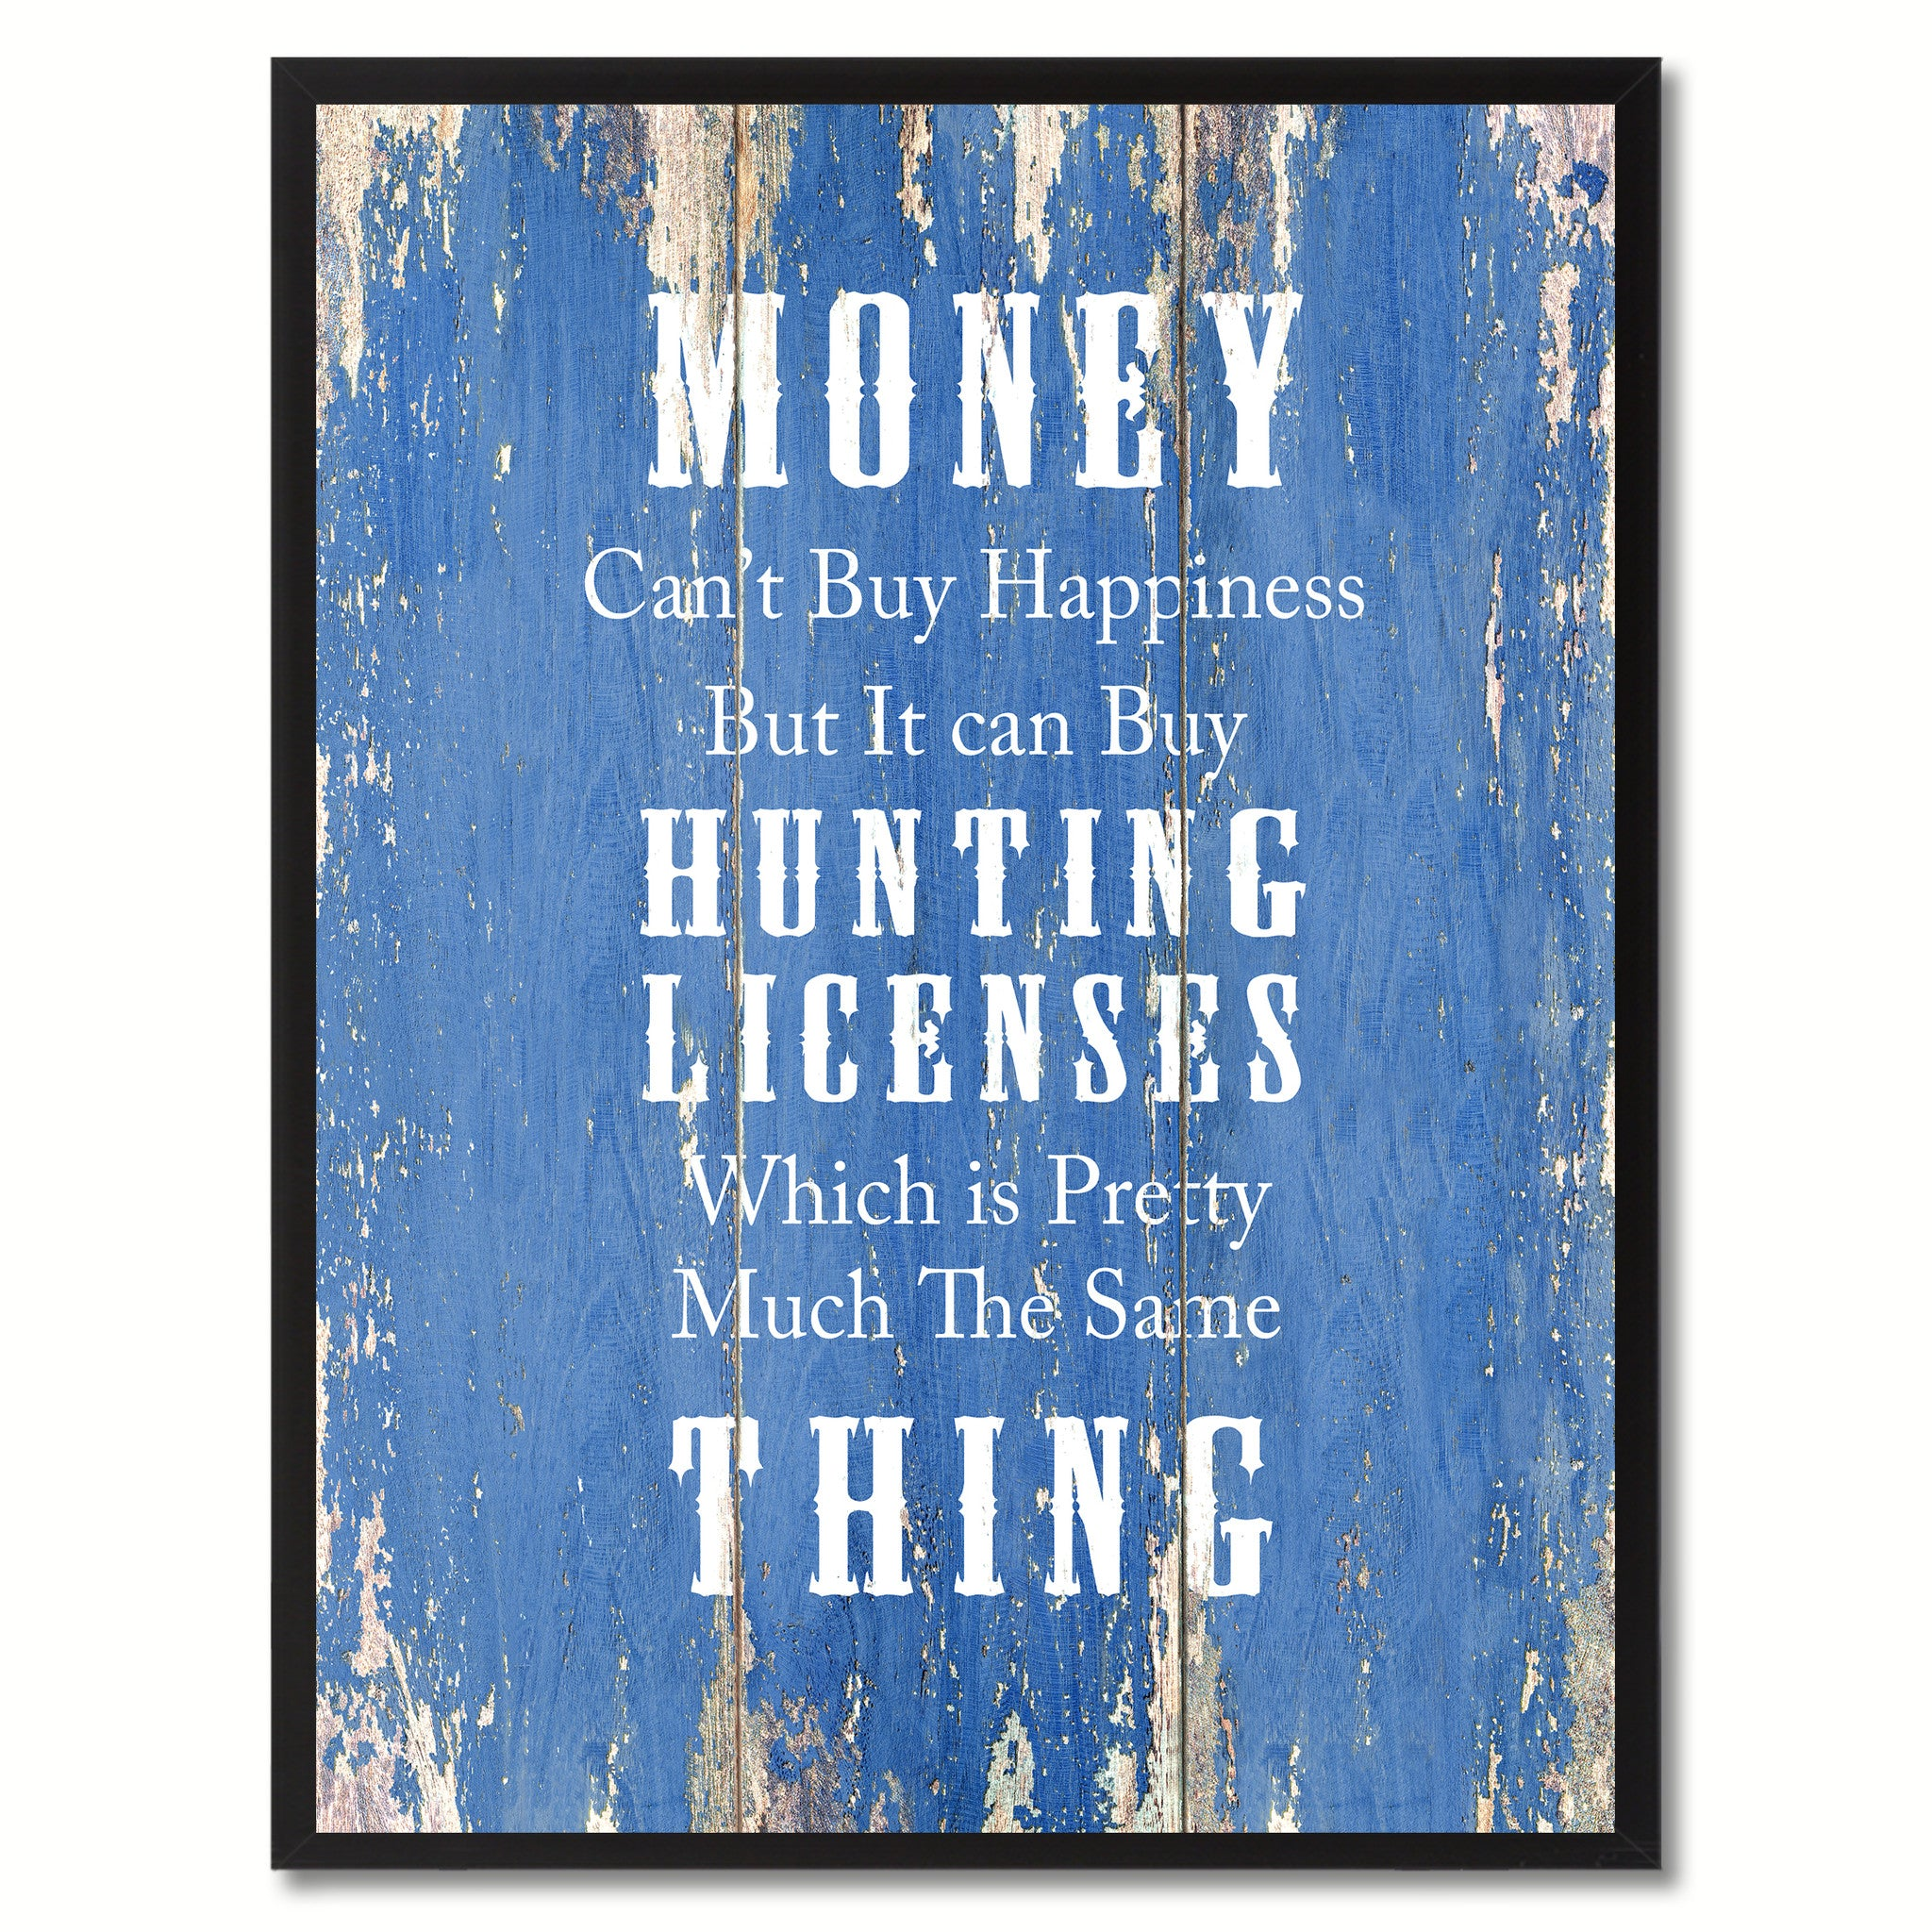 Money Can't Buy Happiness Saying Canvas Print, Black Picture Frame Home Decor Wall Art Gifts